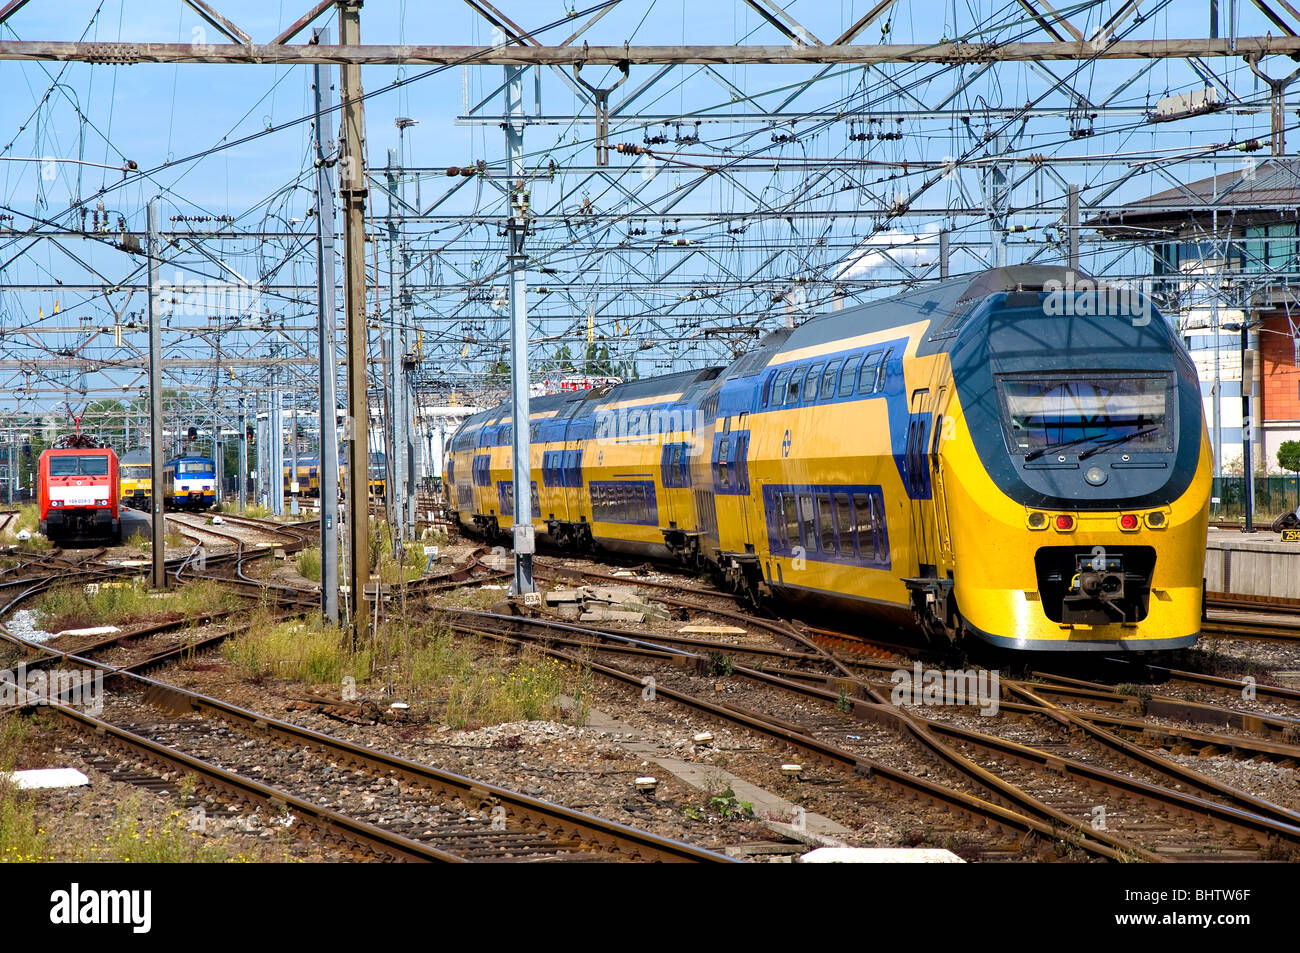 Trains, Amsterdam Centraal Train Station, Amsterdam, Holland - Stock Image